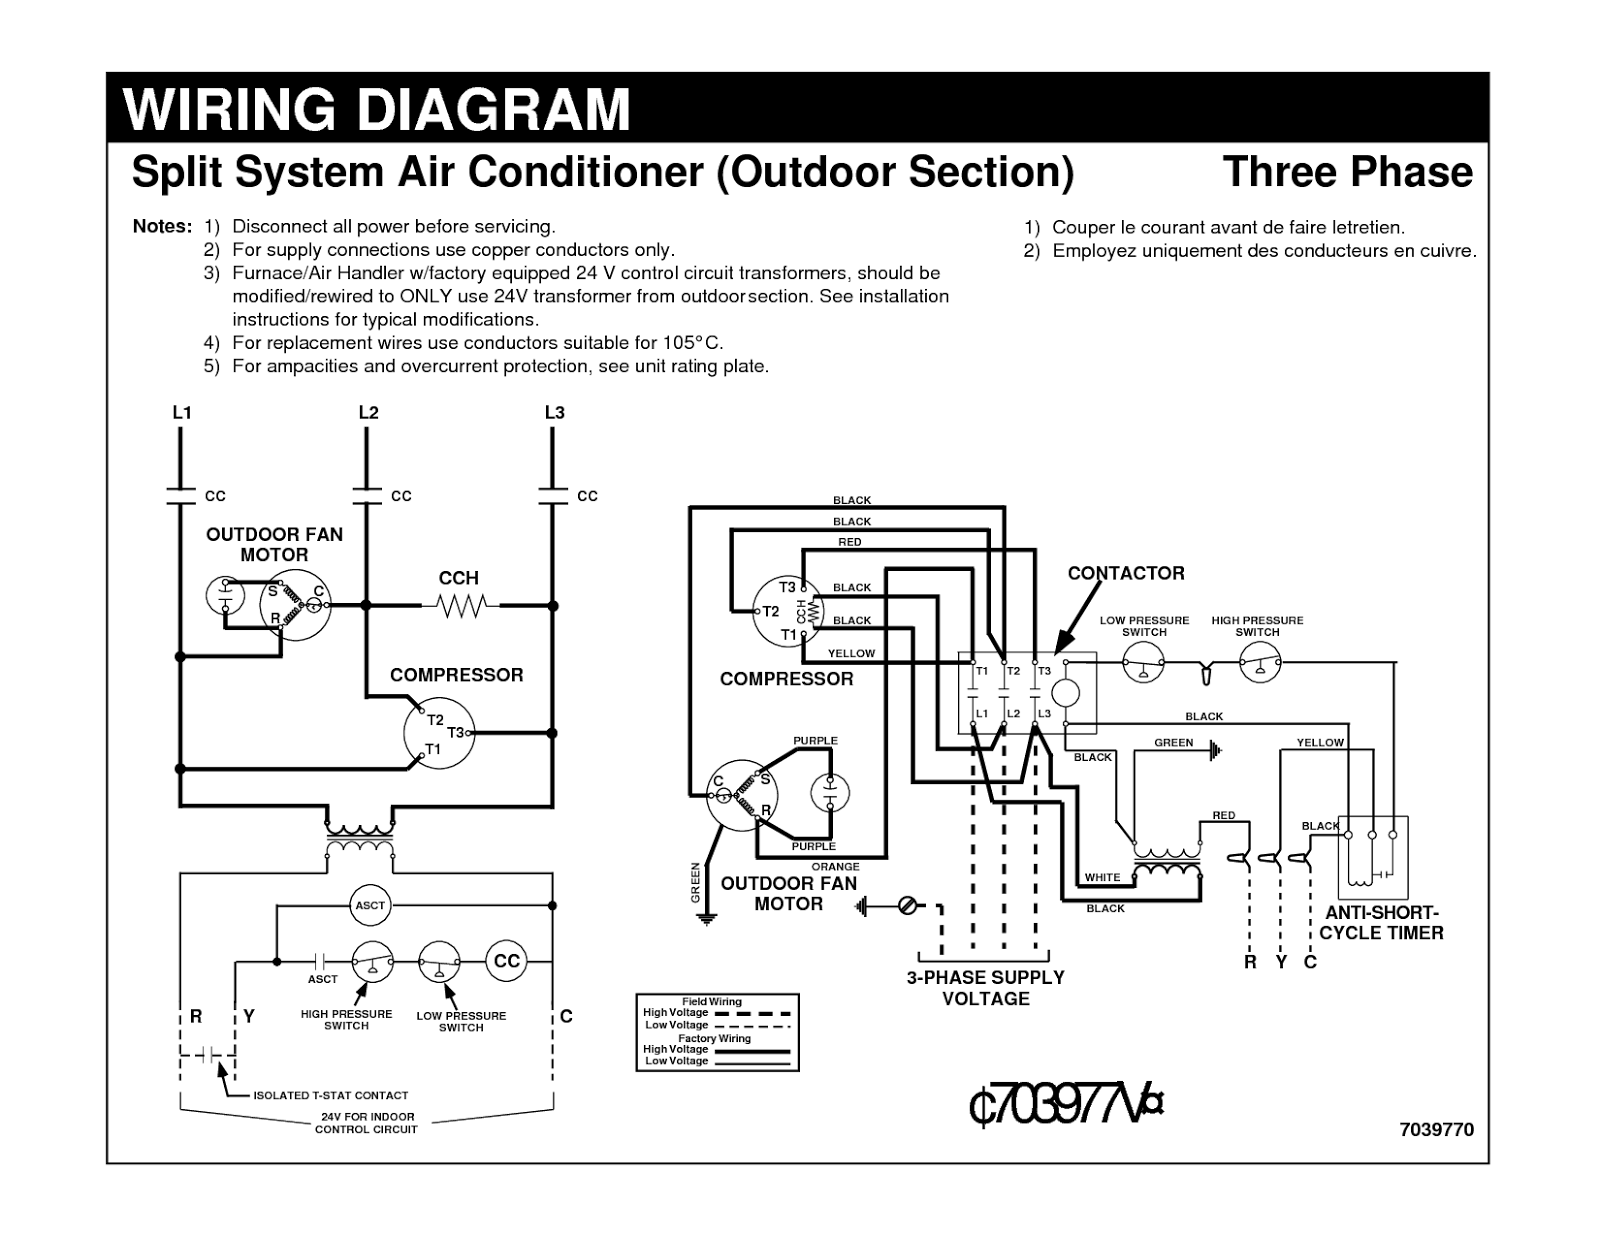 Basic House Wiring Ac -Toyota Matrix Ignition Wiring Diagram | Begeboy Wiring  Diagram SourceBegeboy Wiring Diagram Source